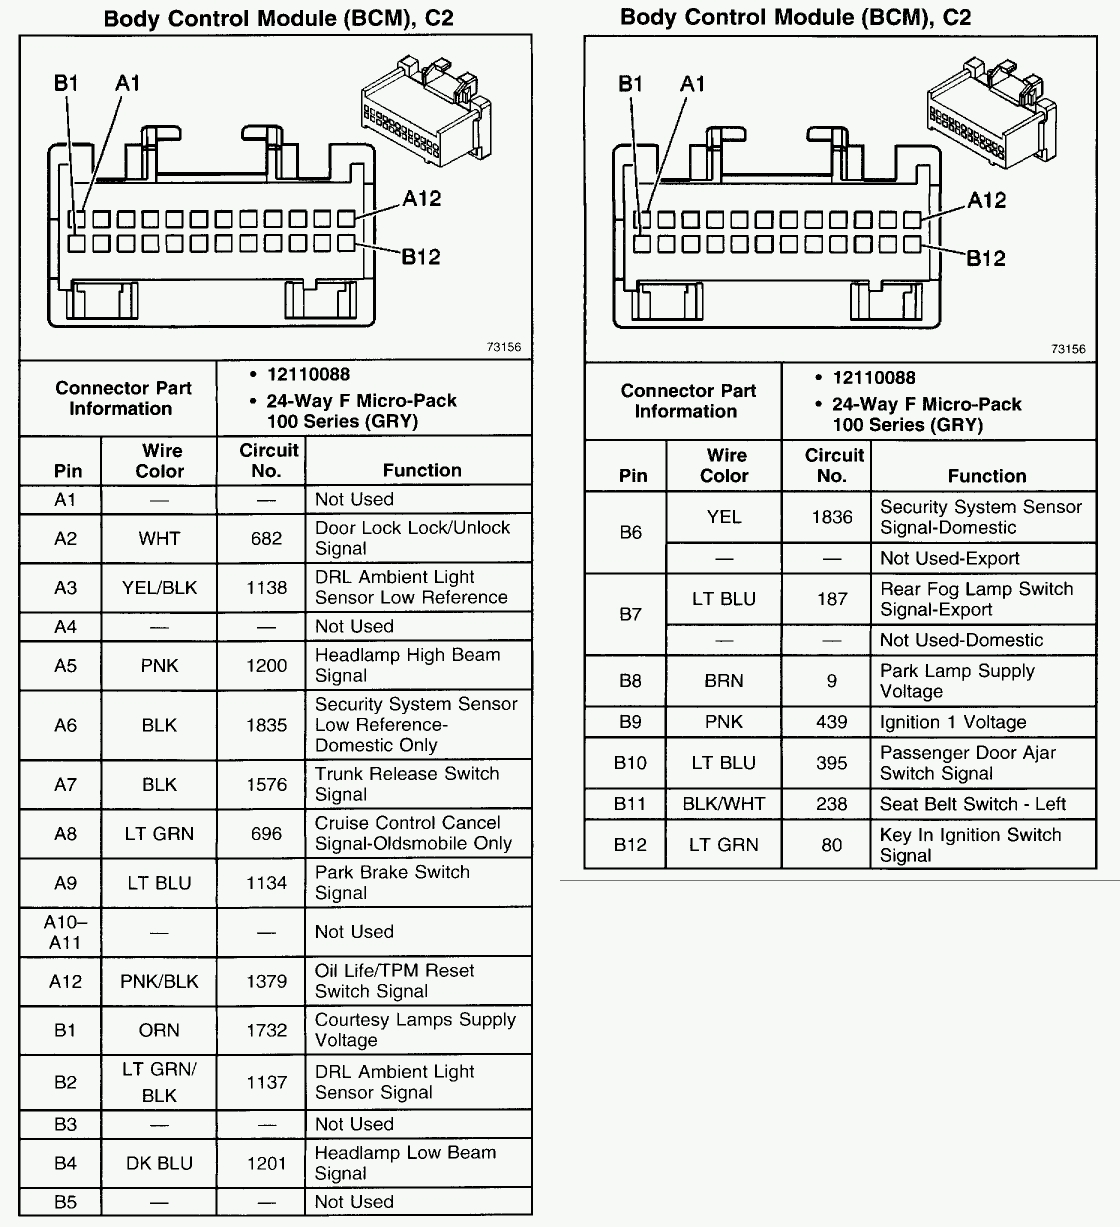 2004 pontiac grand prix parts diagram | automotive parts ... wiring diagram for 2002 grand prix amp wire diagram for 2004 grand prix #3